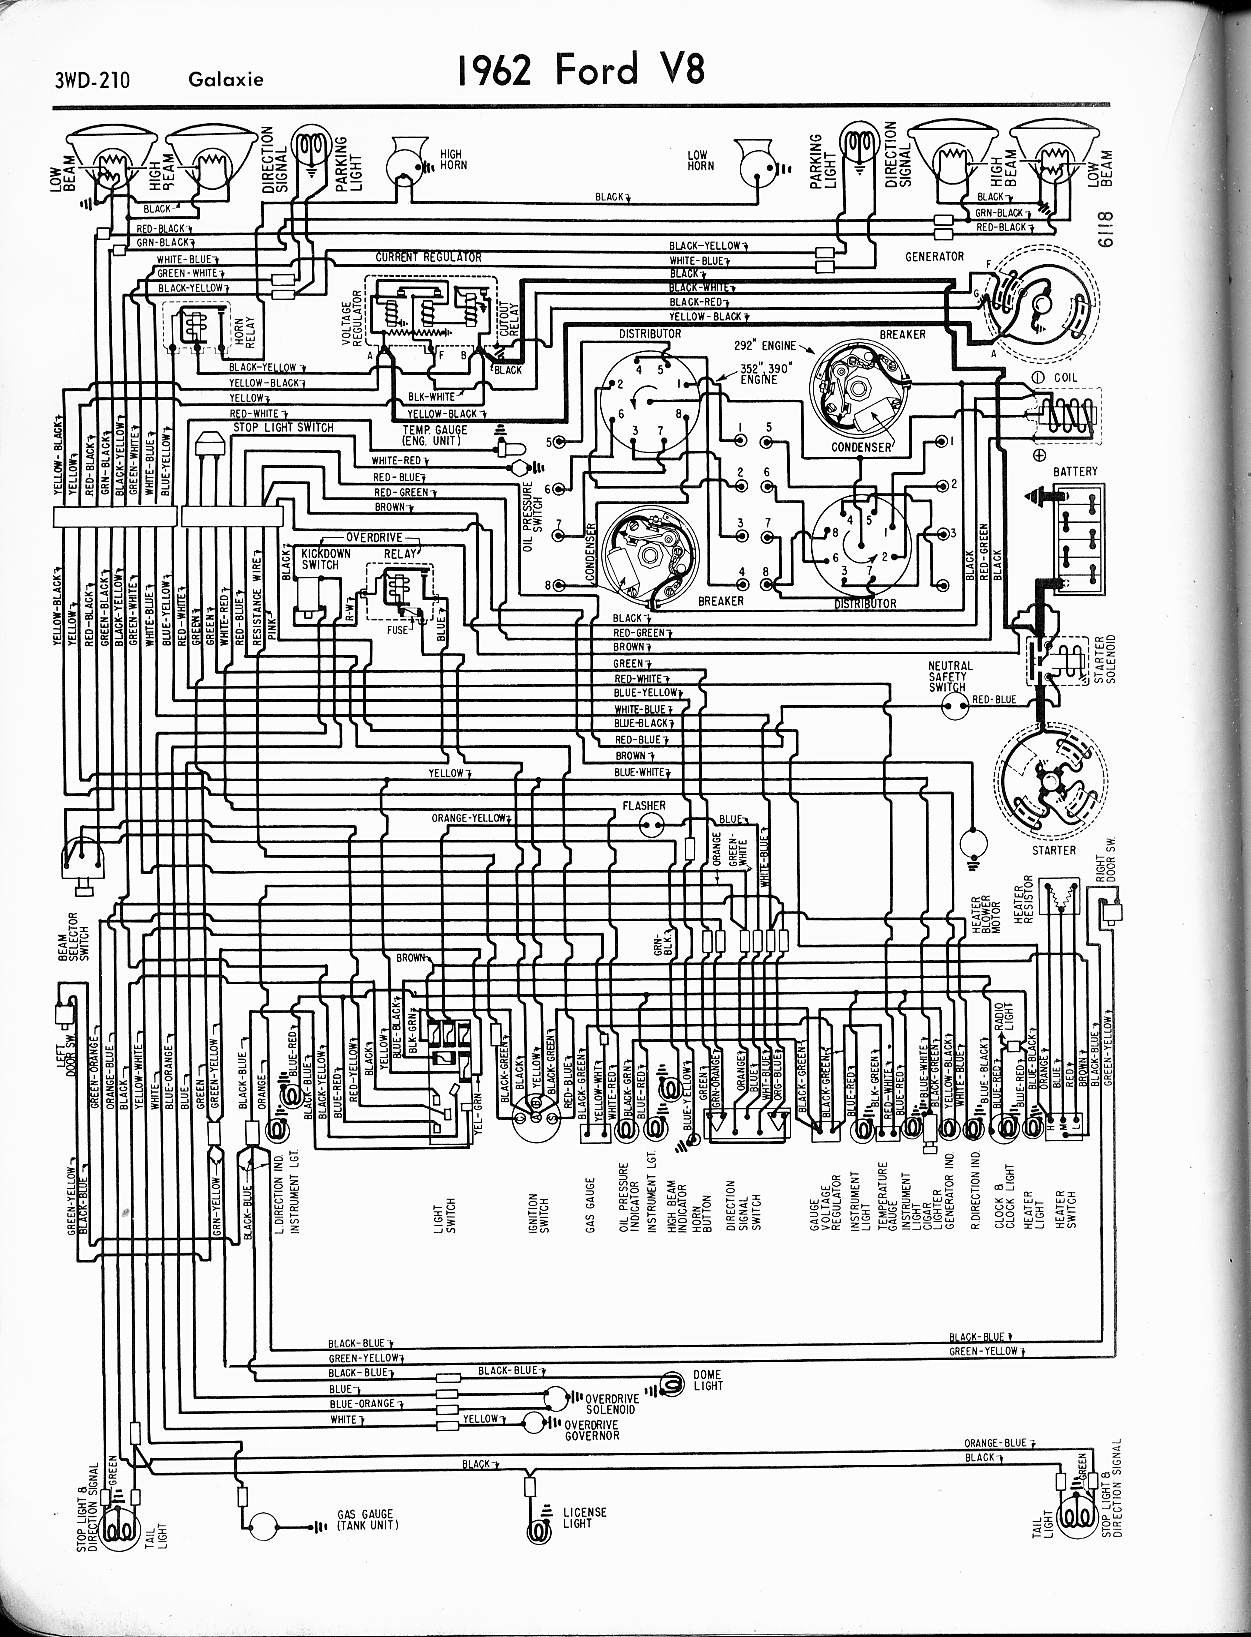 1962 ford f250 wiring diagram automotive block diagram u2022 rh carwiringdiagram today